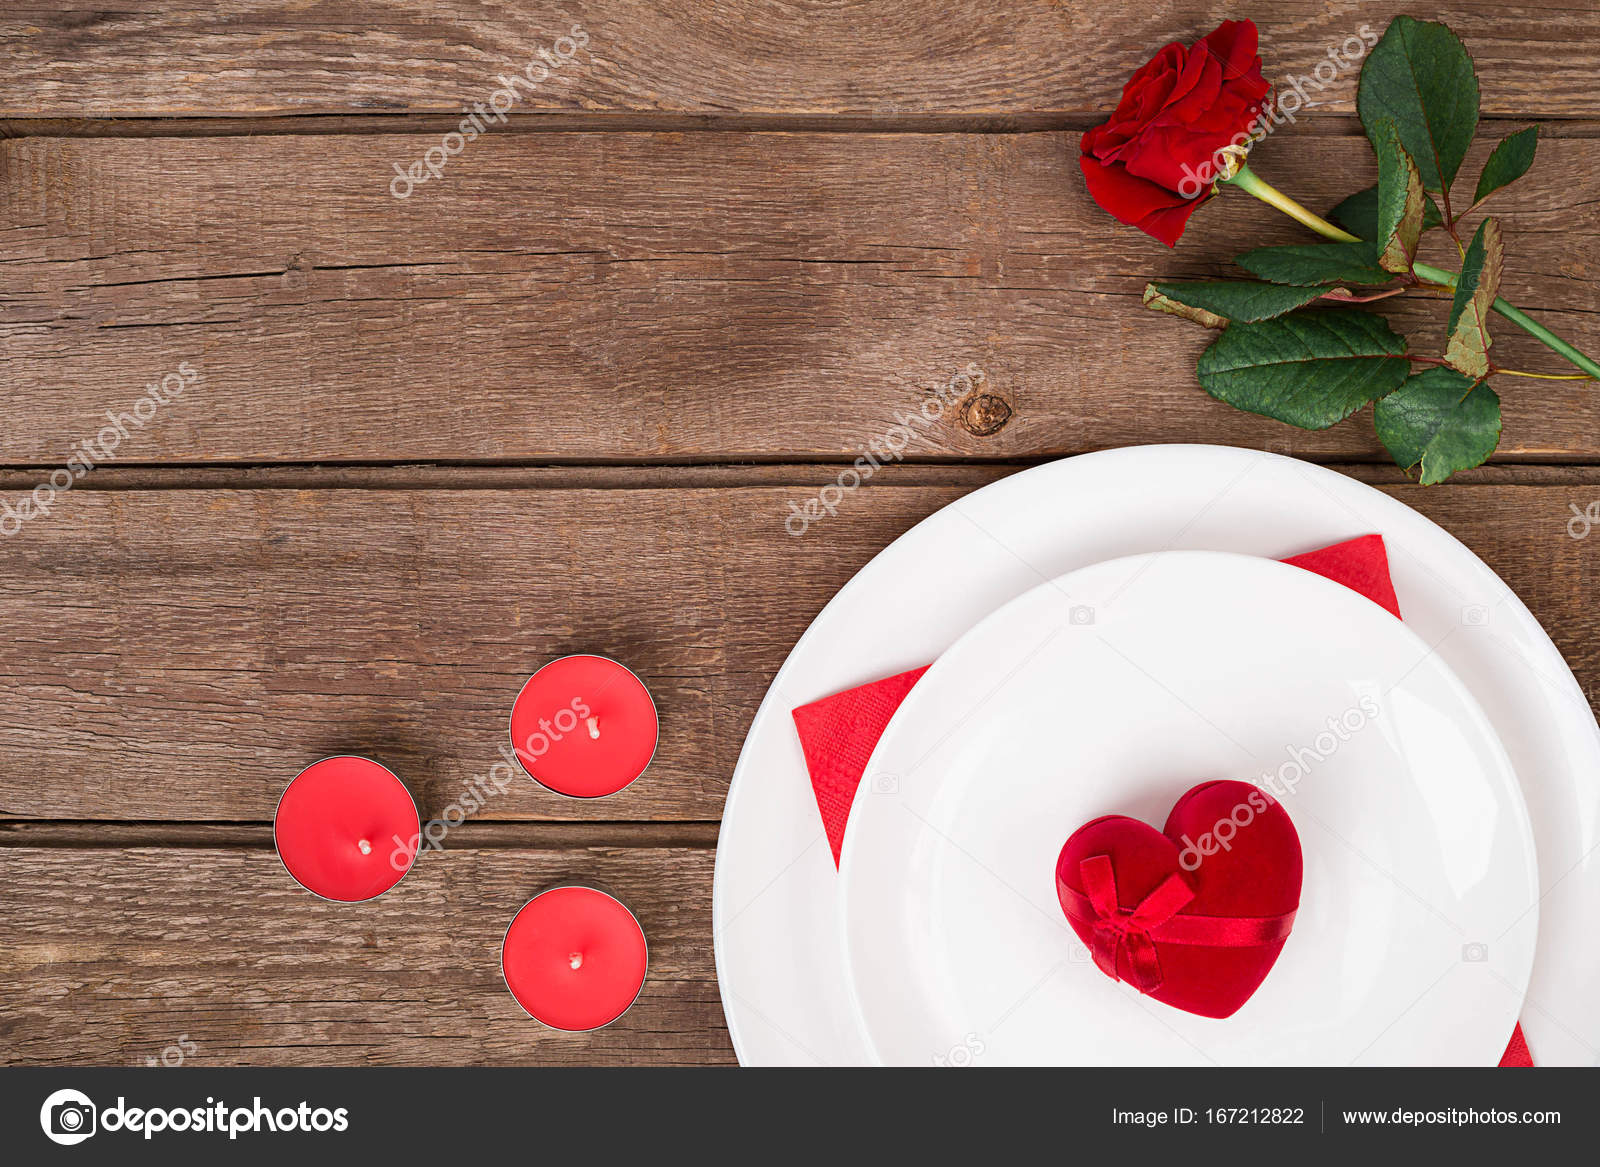 Romantic Dinner Concept Valentine Day Or Proposal Background